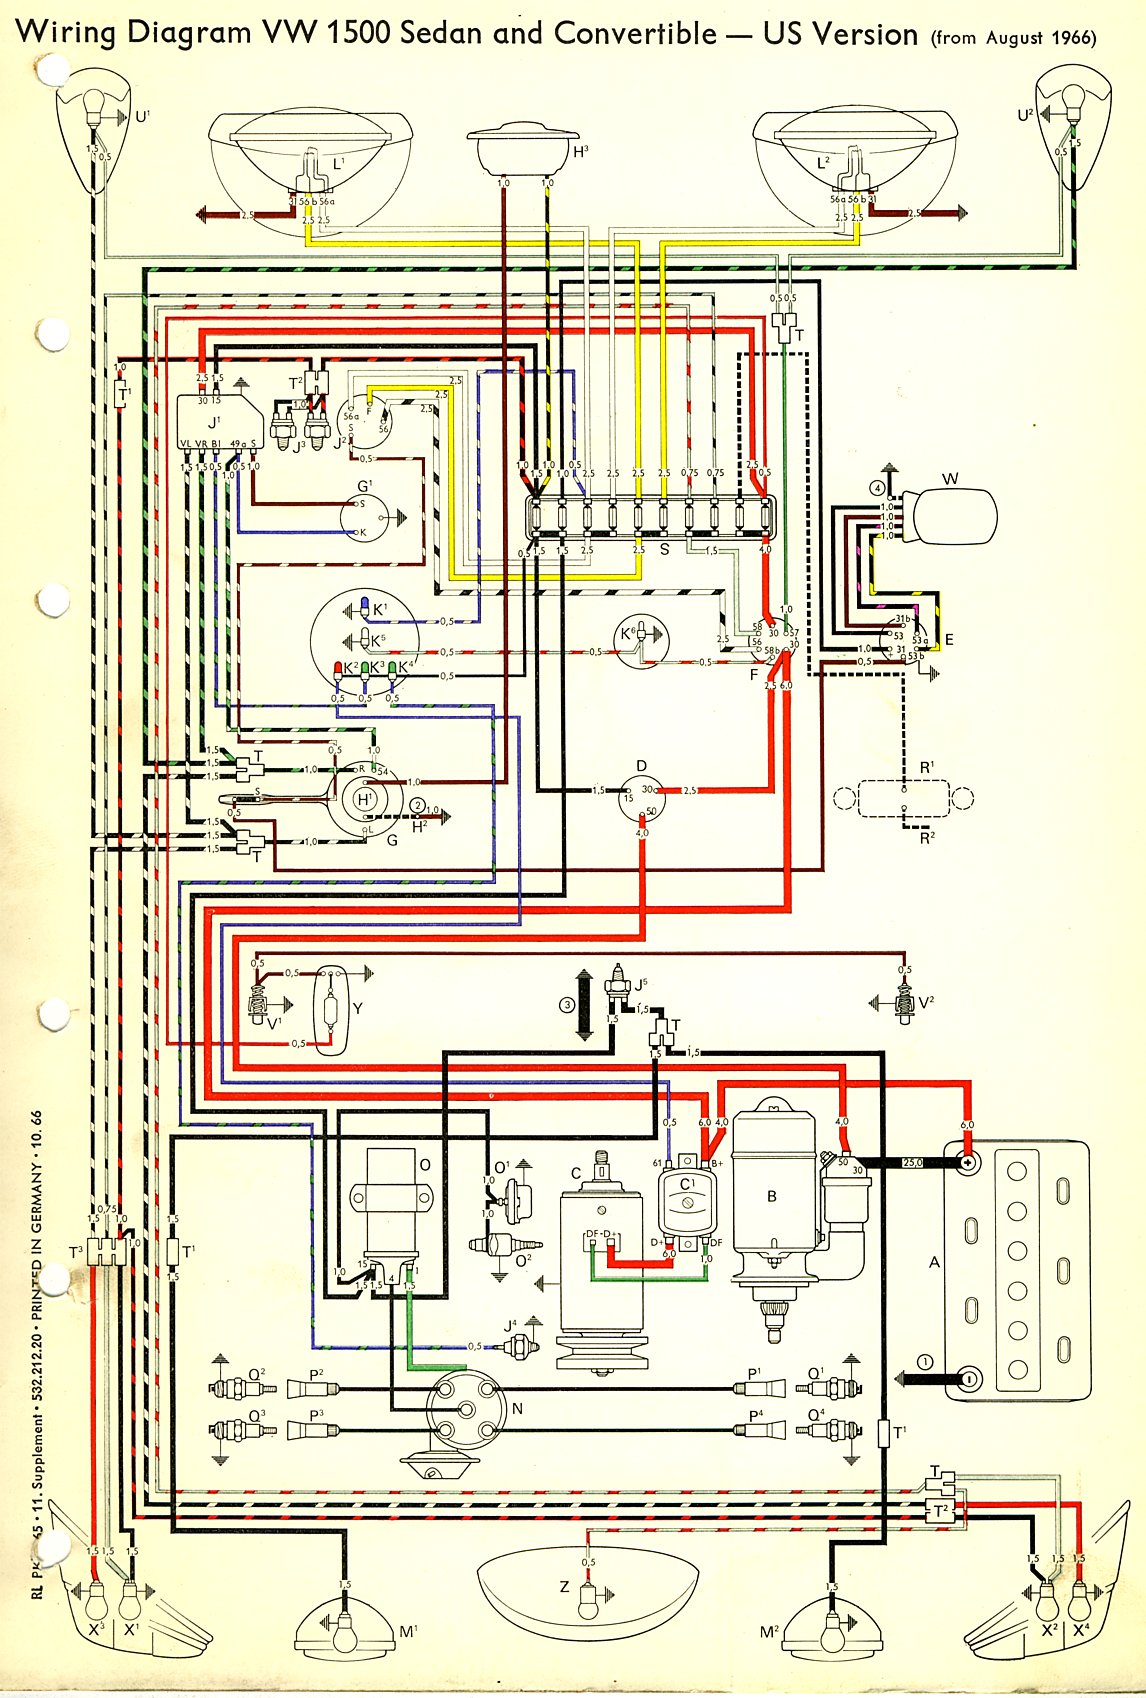 1969 vw type 1 wiring diagram wiring diagrams and schematics vw 9 g box troubleshooting and replacement